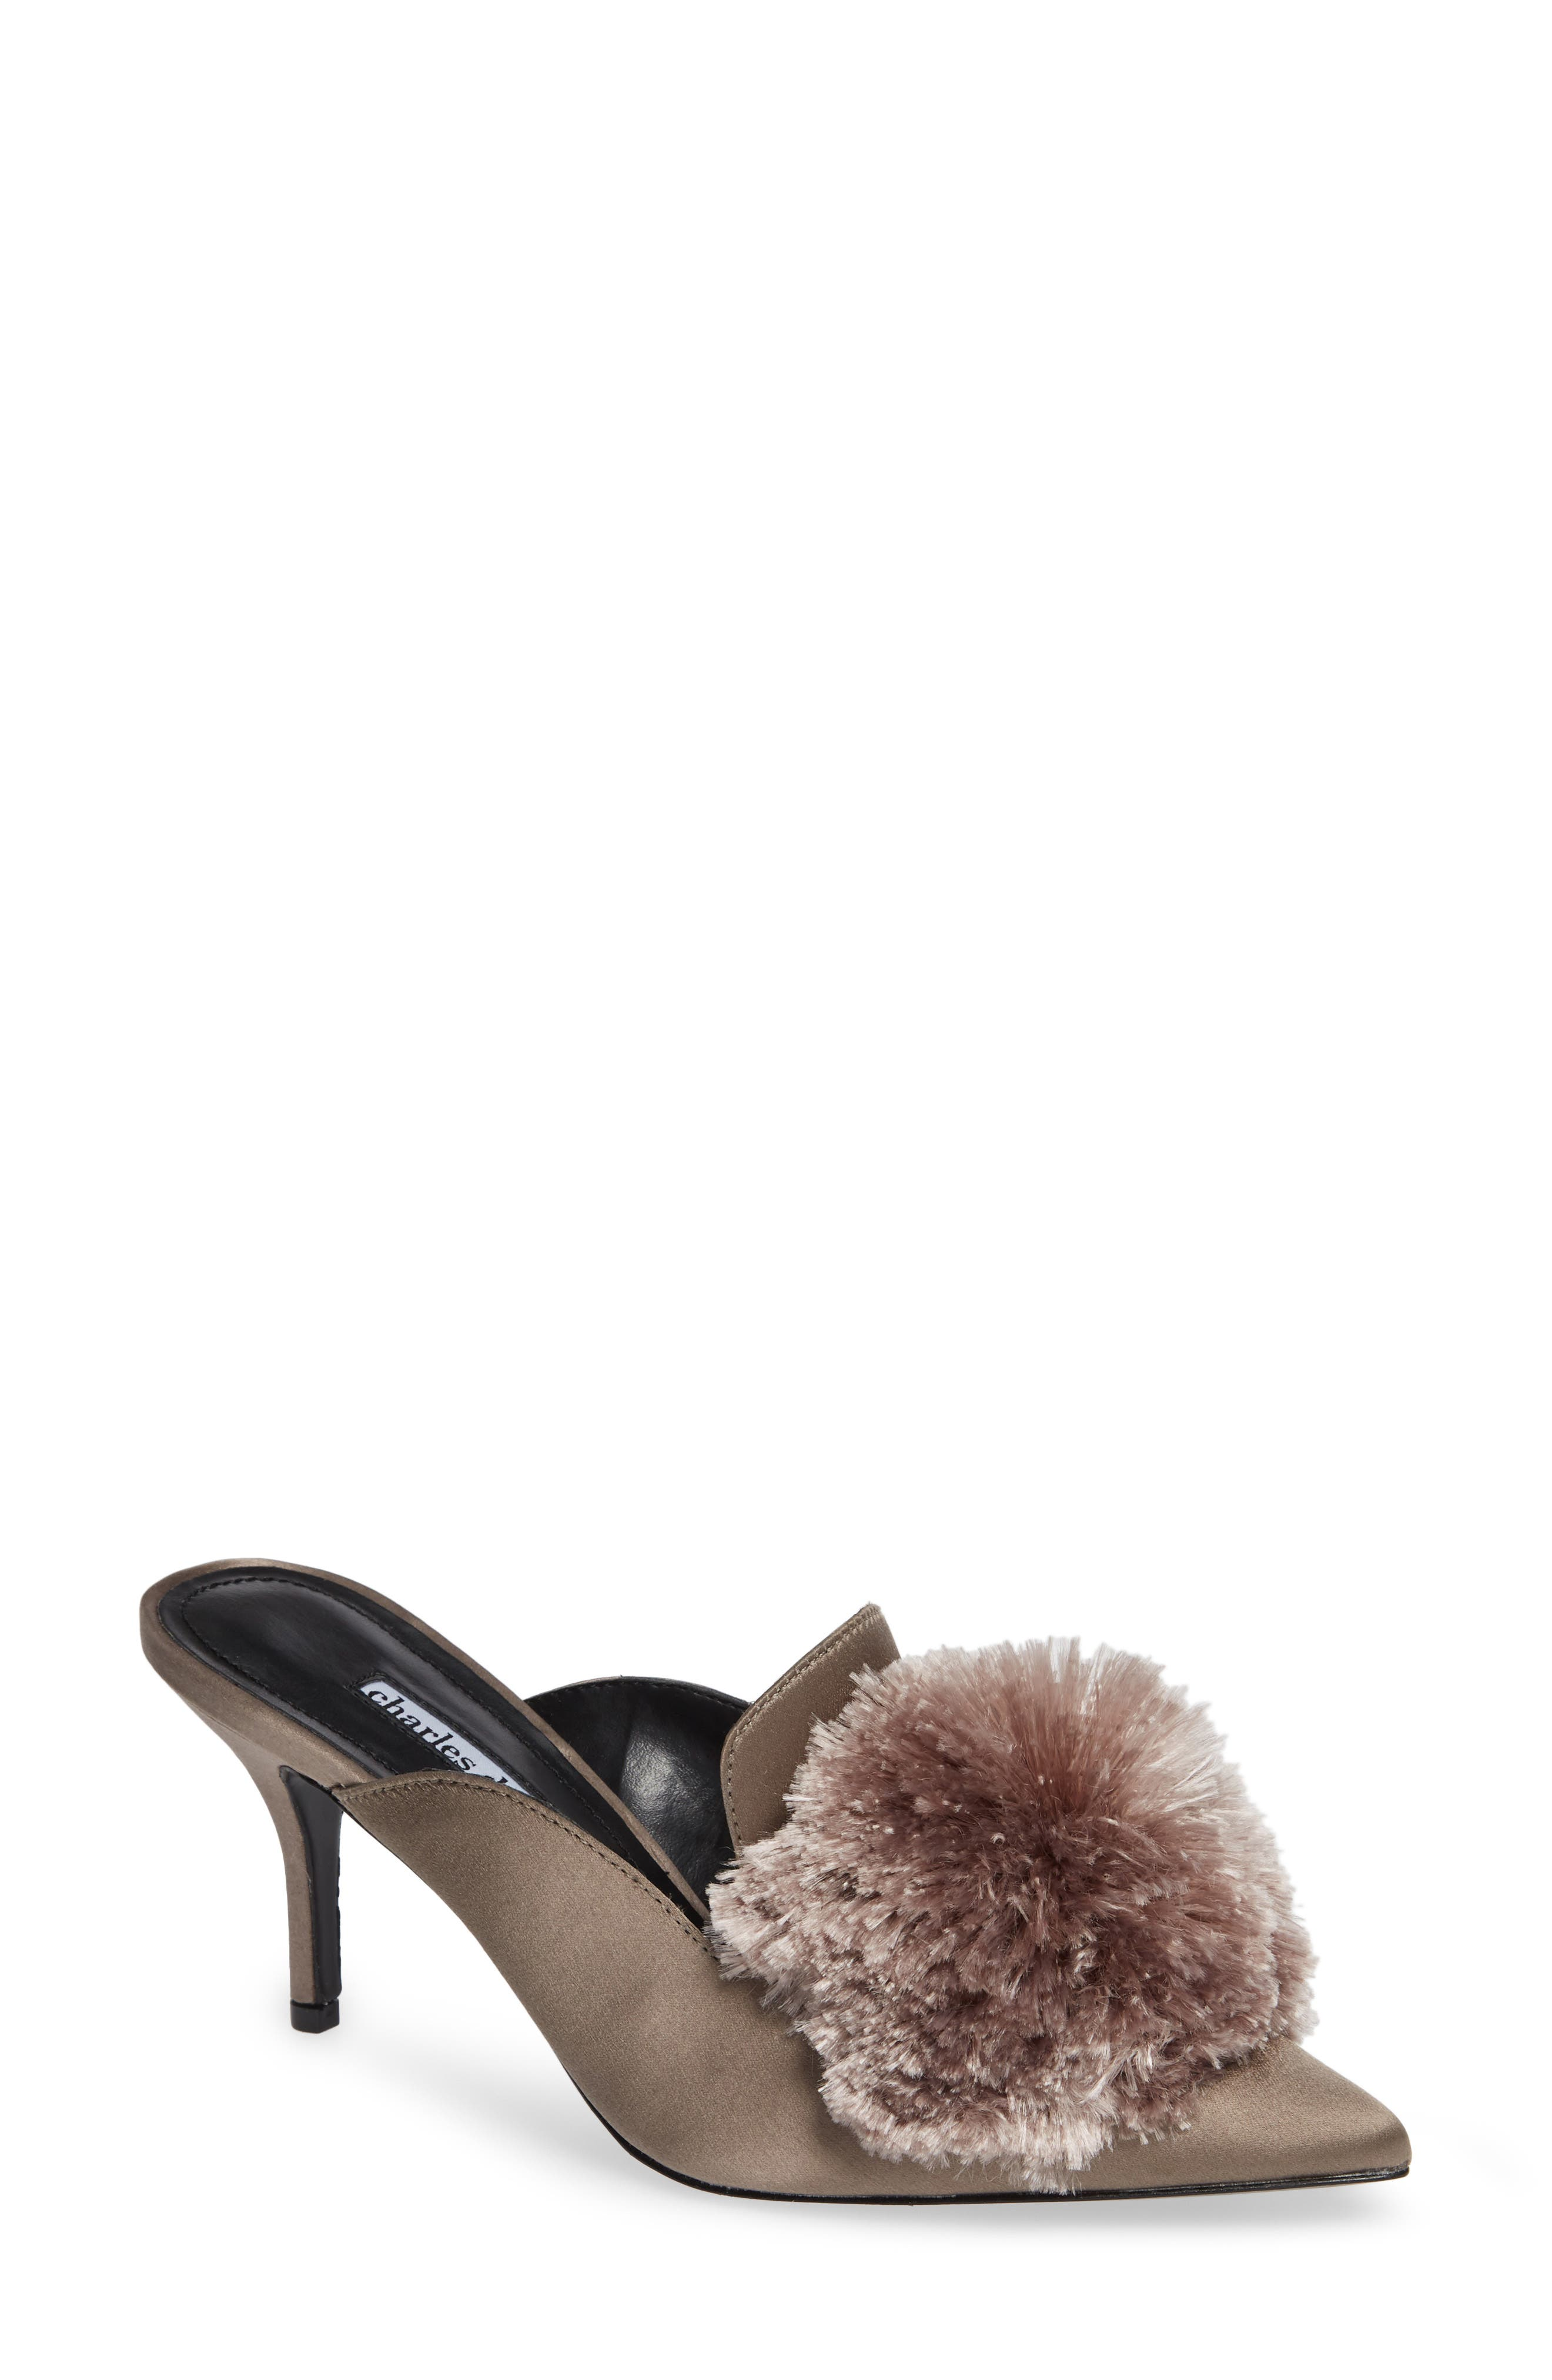 Adelle Pompom Loafer Mule,                             Main thumbnail 1, color,                             TAUPE SATIN